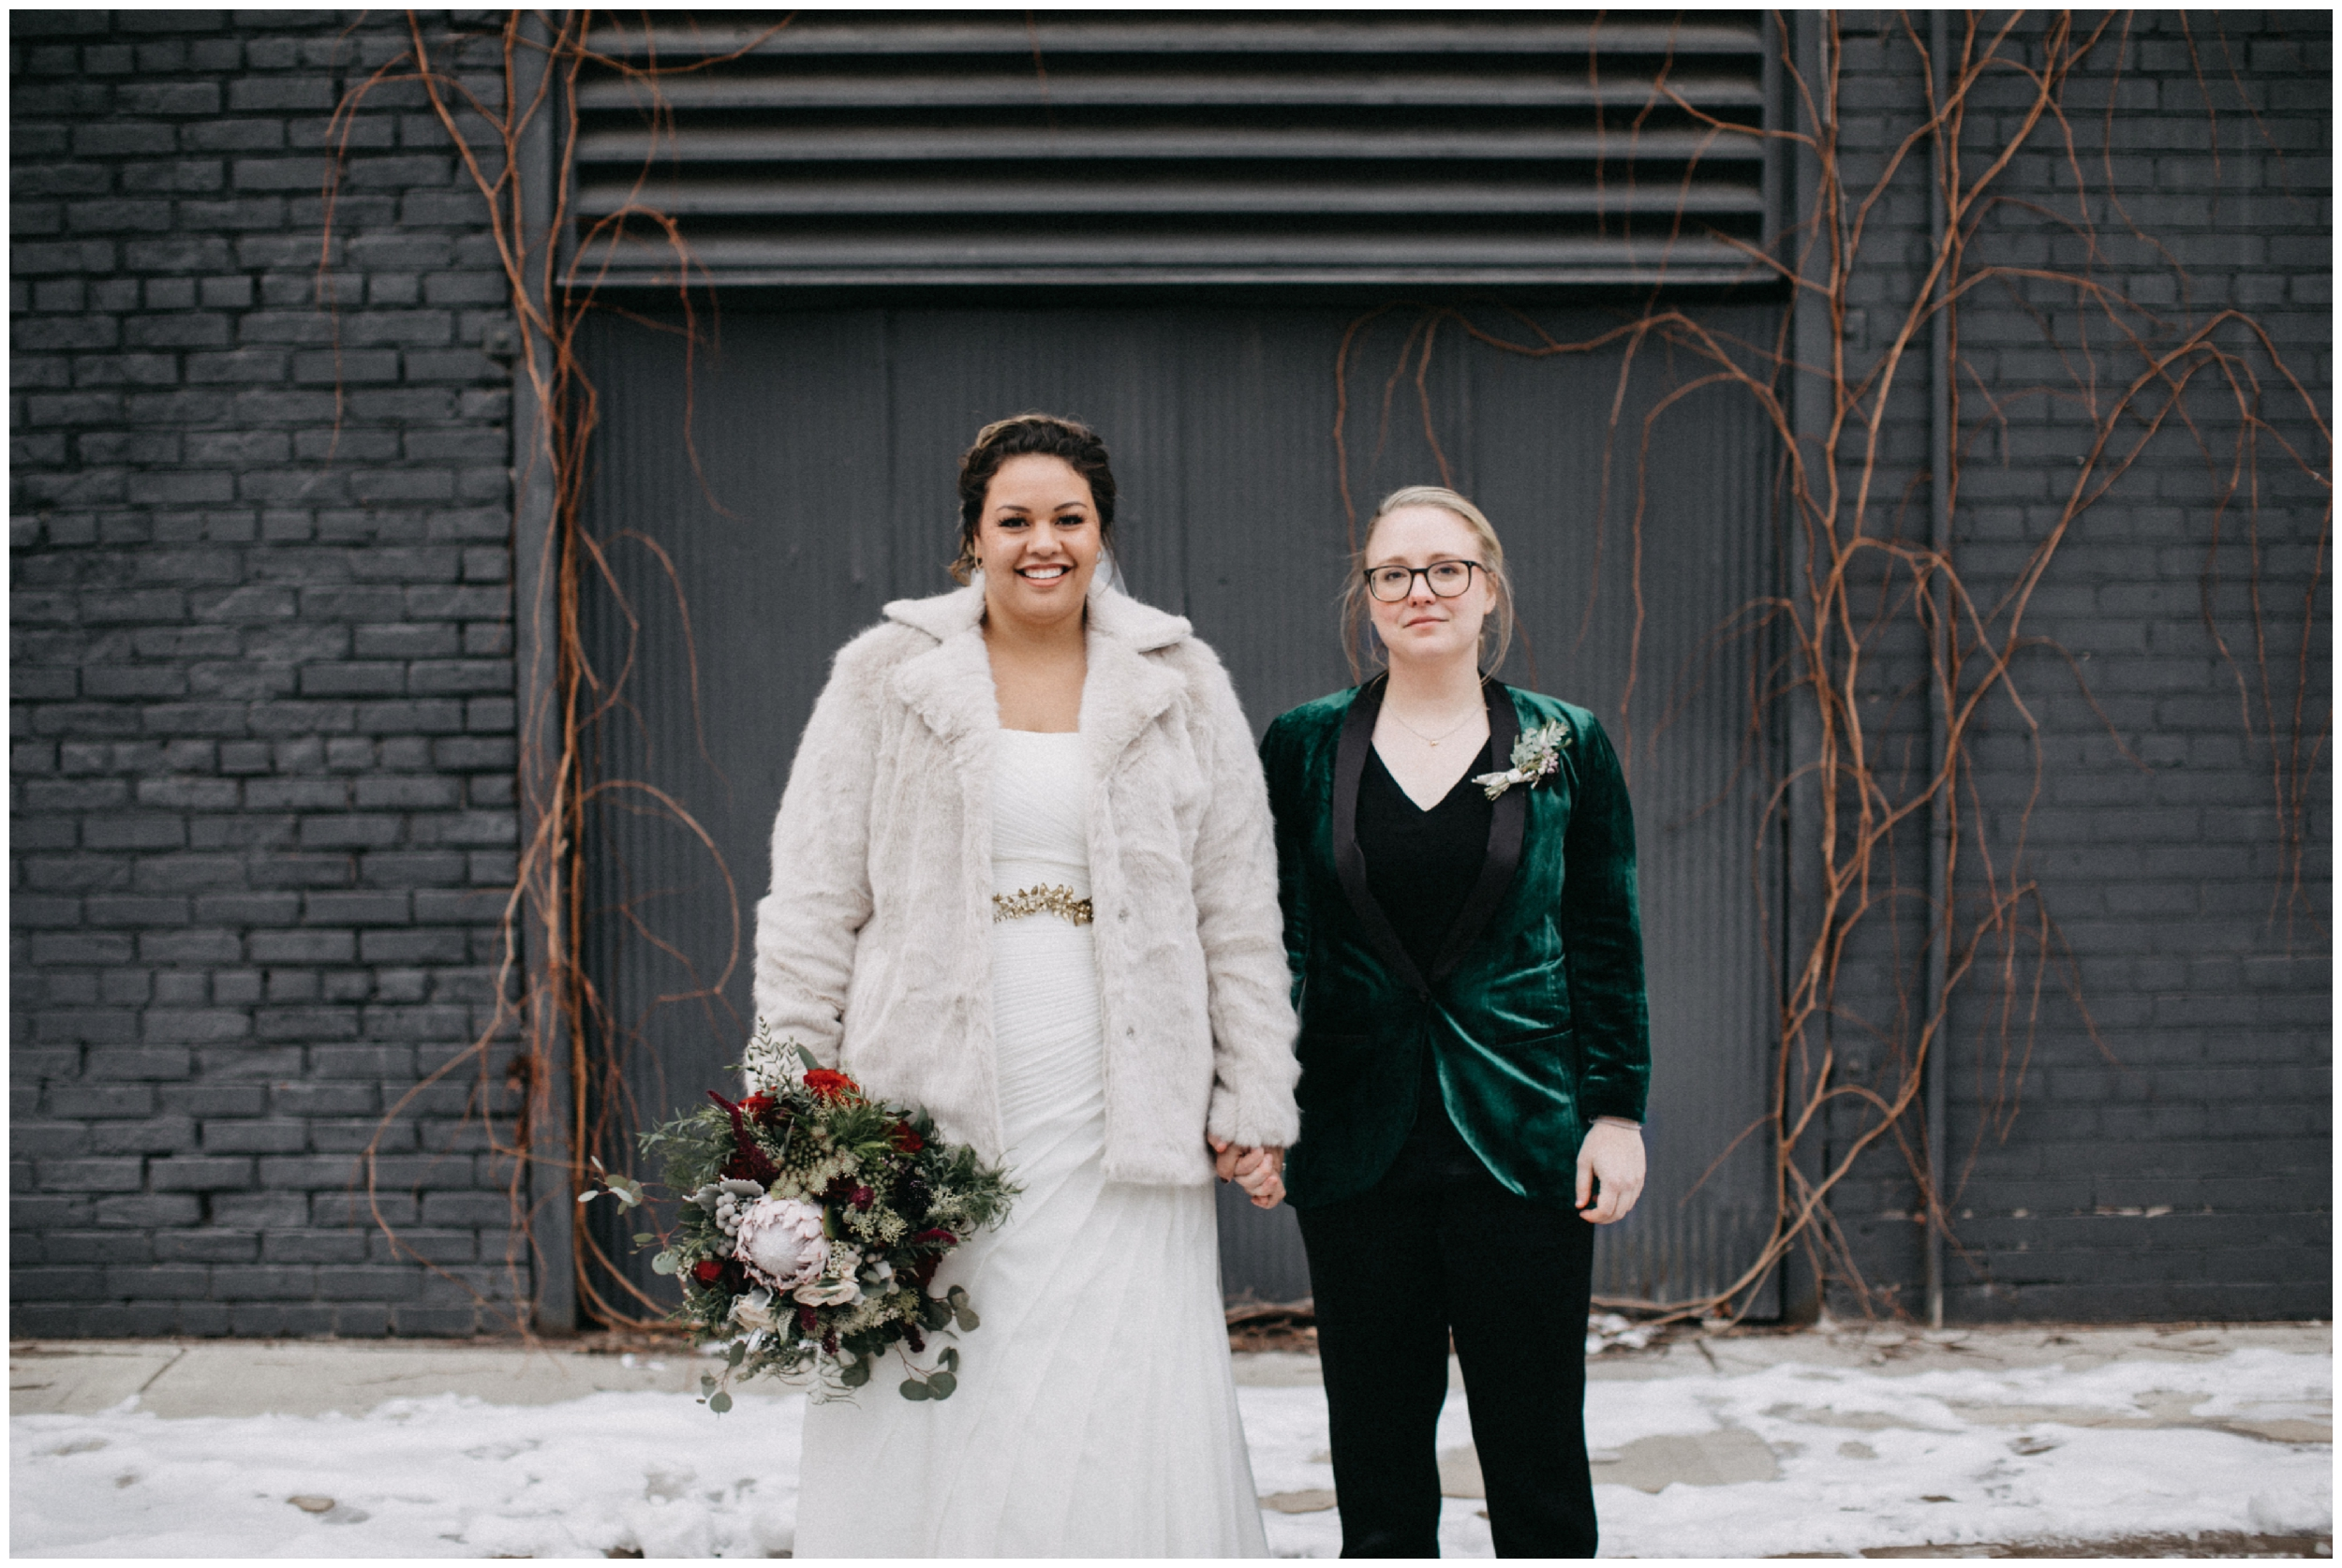 Modern industrial wedding at Paikka